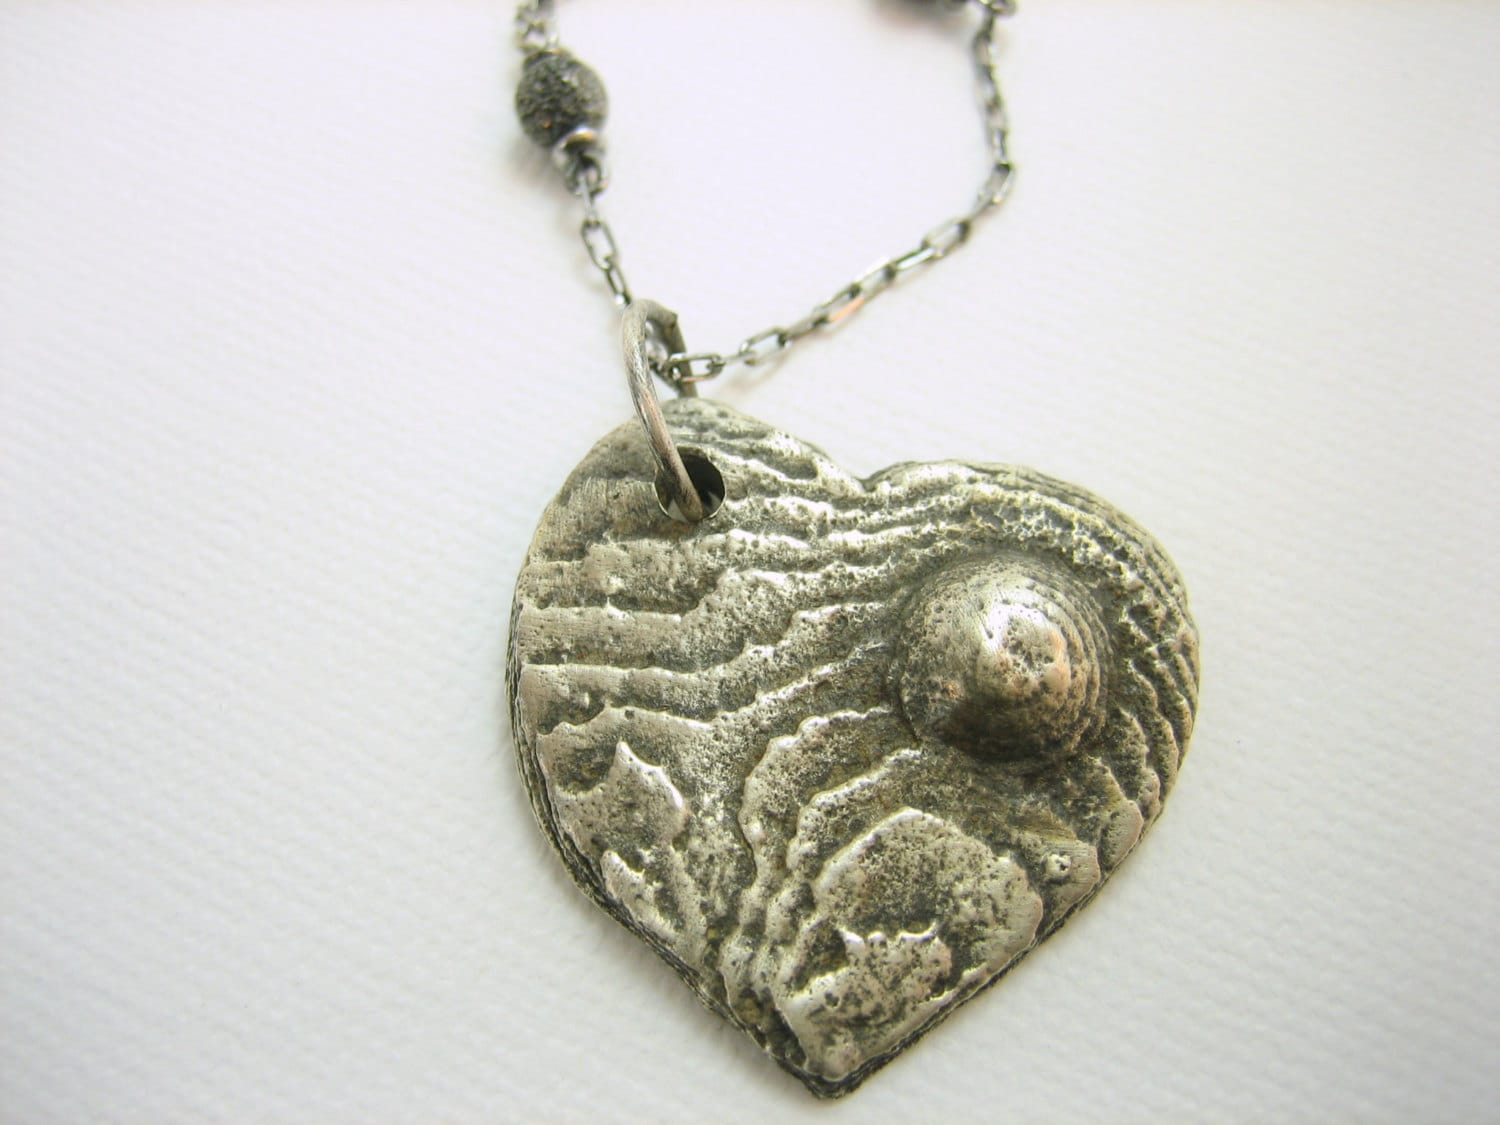 Fine silver heart pendant with sterling silver chain, oxidized silver handmade heart necklace, artisan silver heart necklace, handmade heart